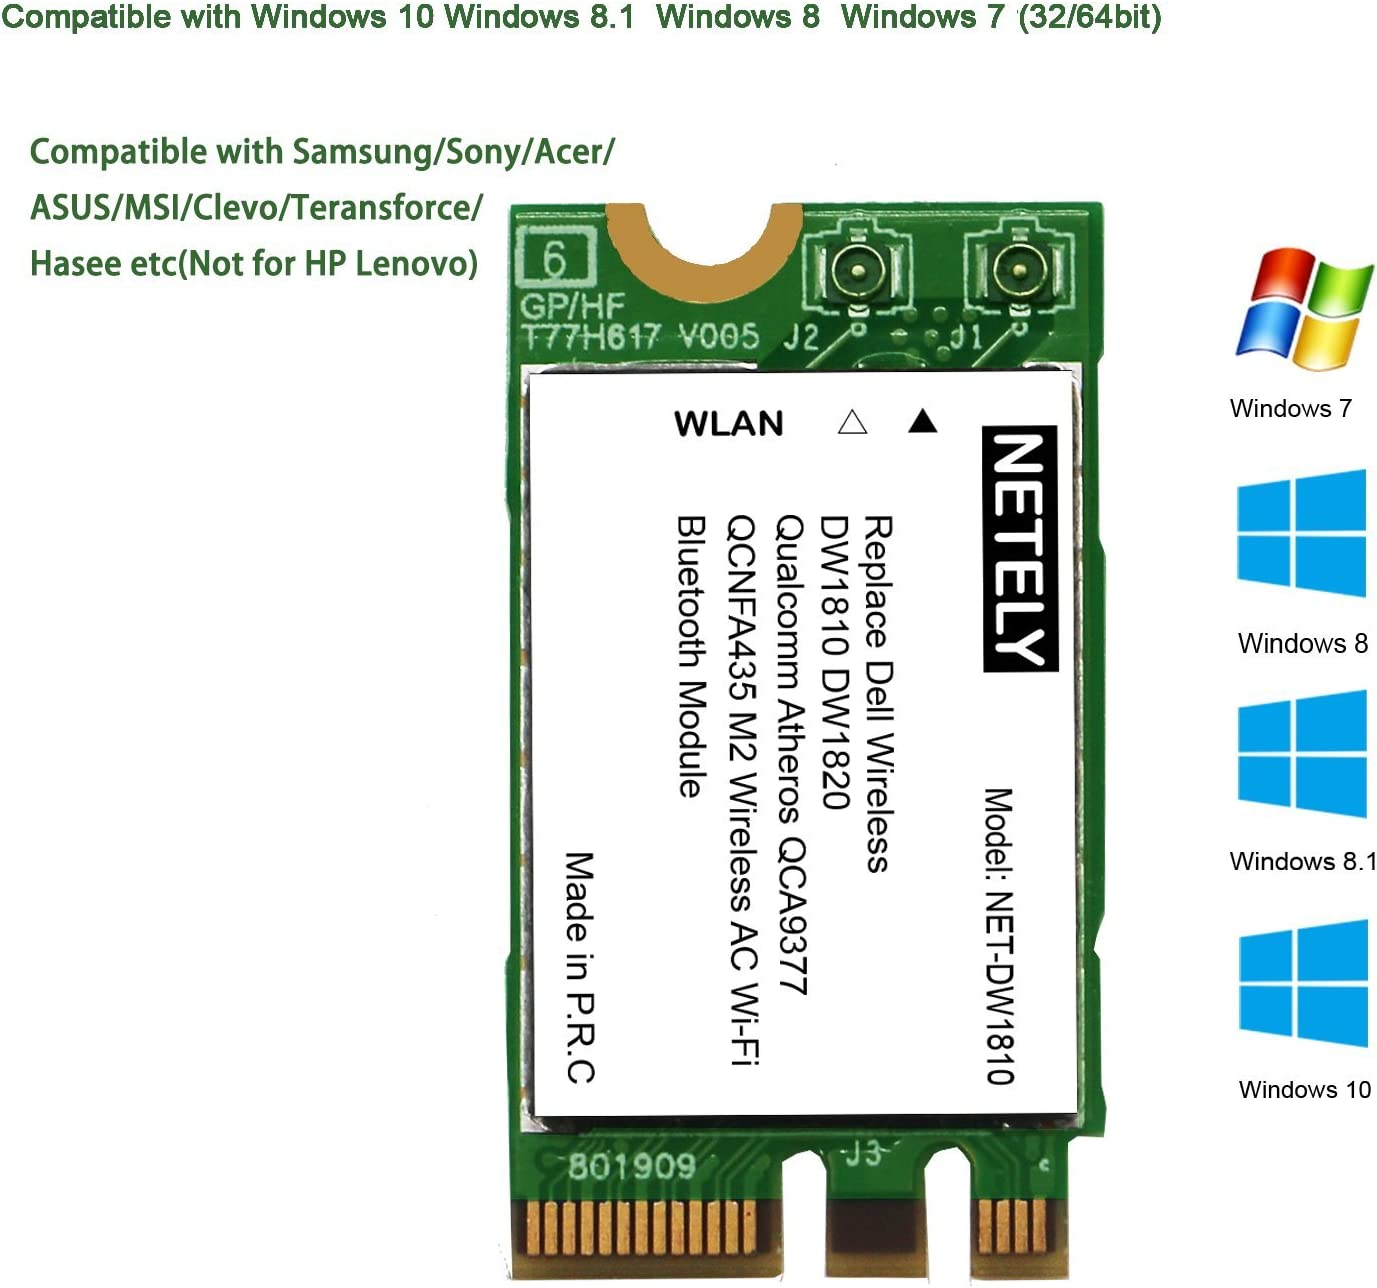 Qualcomm Atheros Qca9377 Wireless Network Adapter Driver